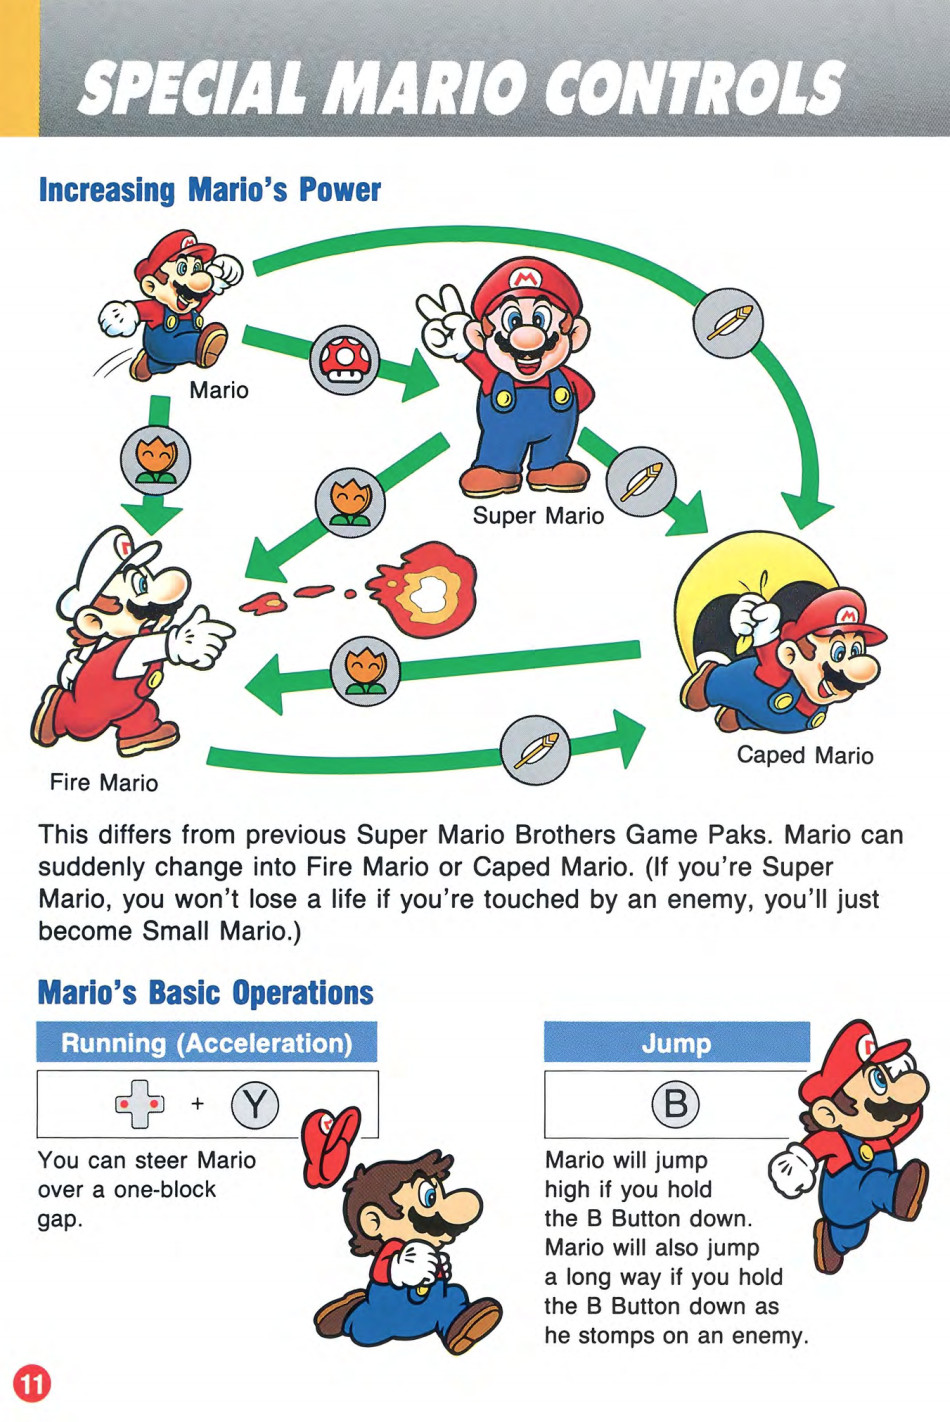 SNES Classic's game manuals are now online, and they're wonderful